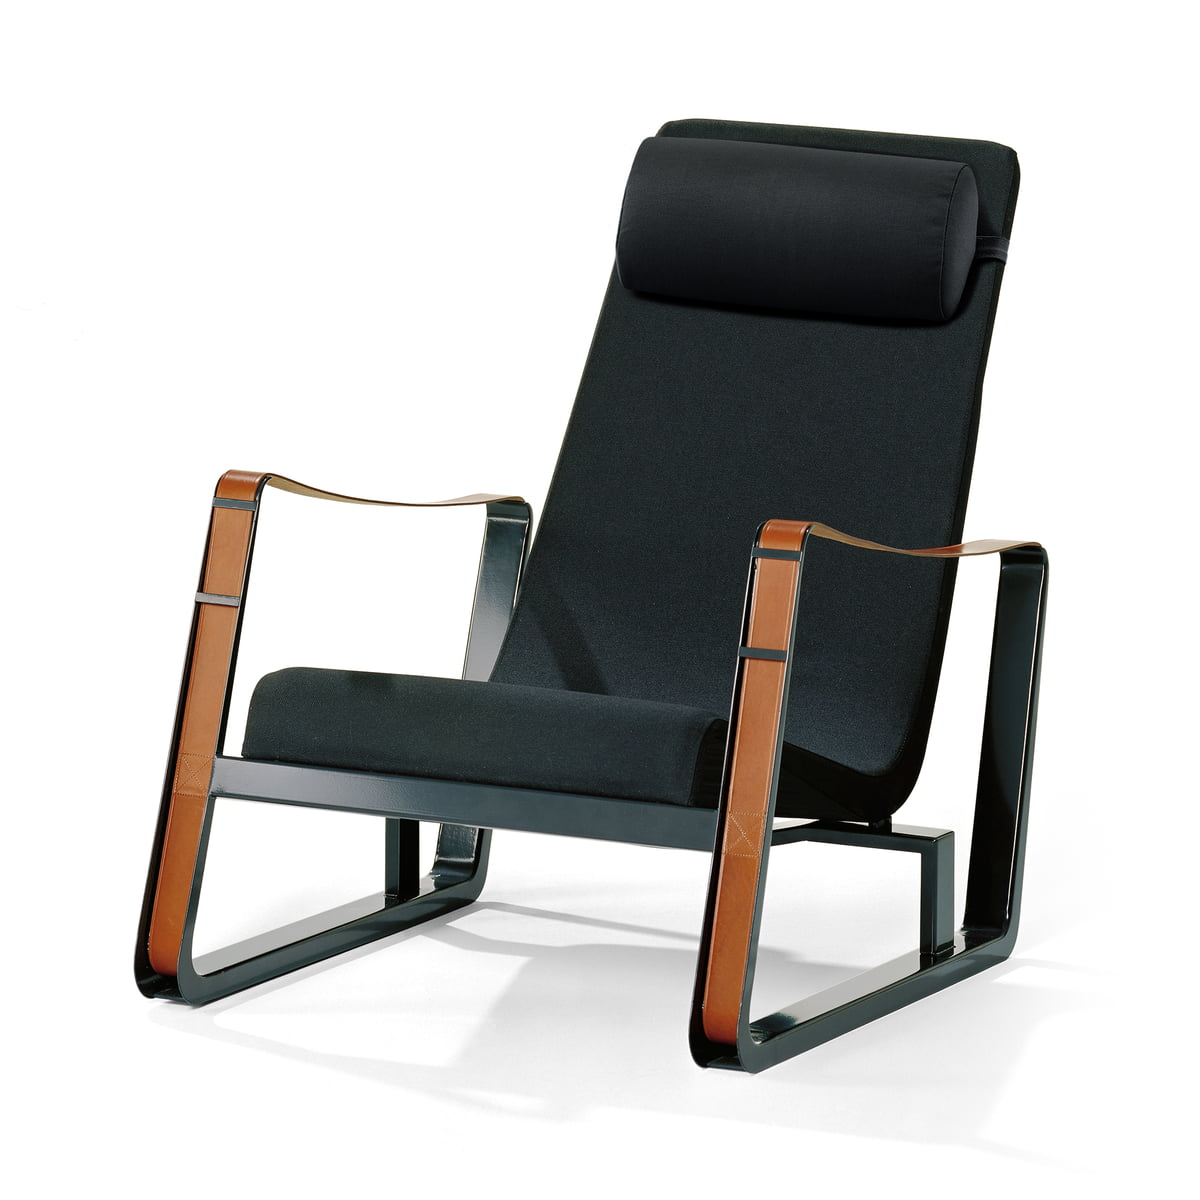 Tumblr Sessel Jean Prouvé Cité Lounge Chair For Vitra Original Price 5 120 00